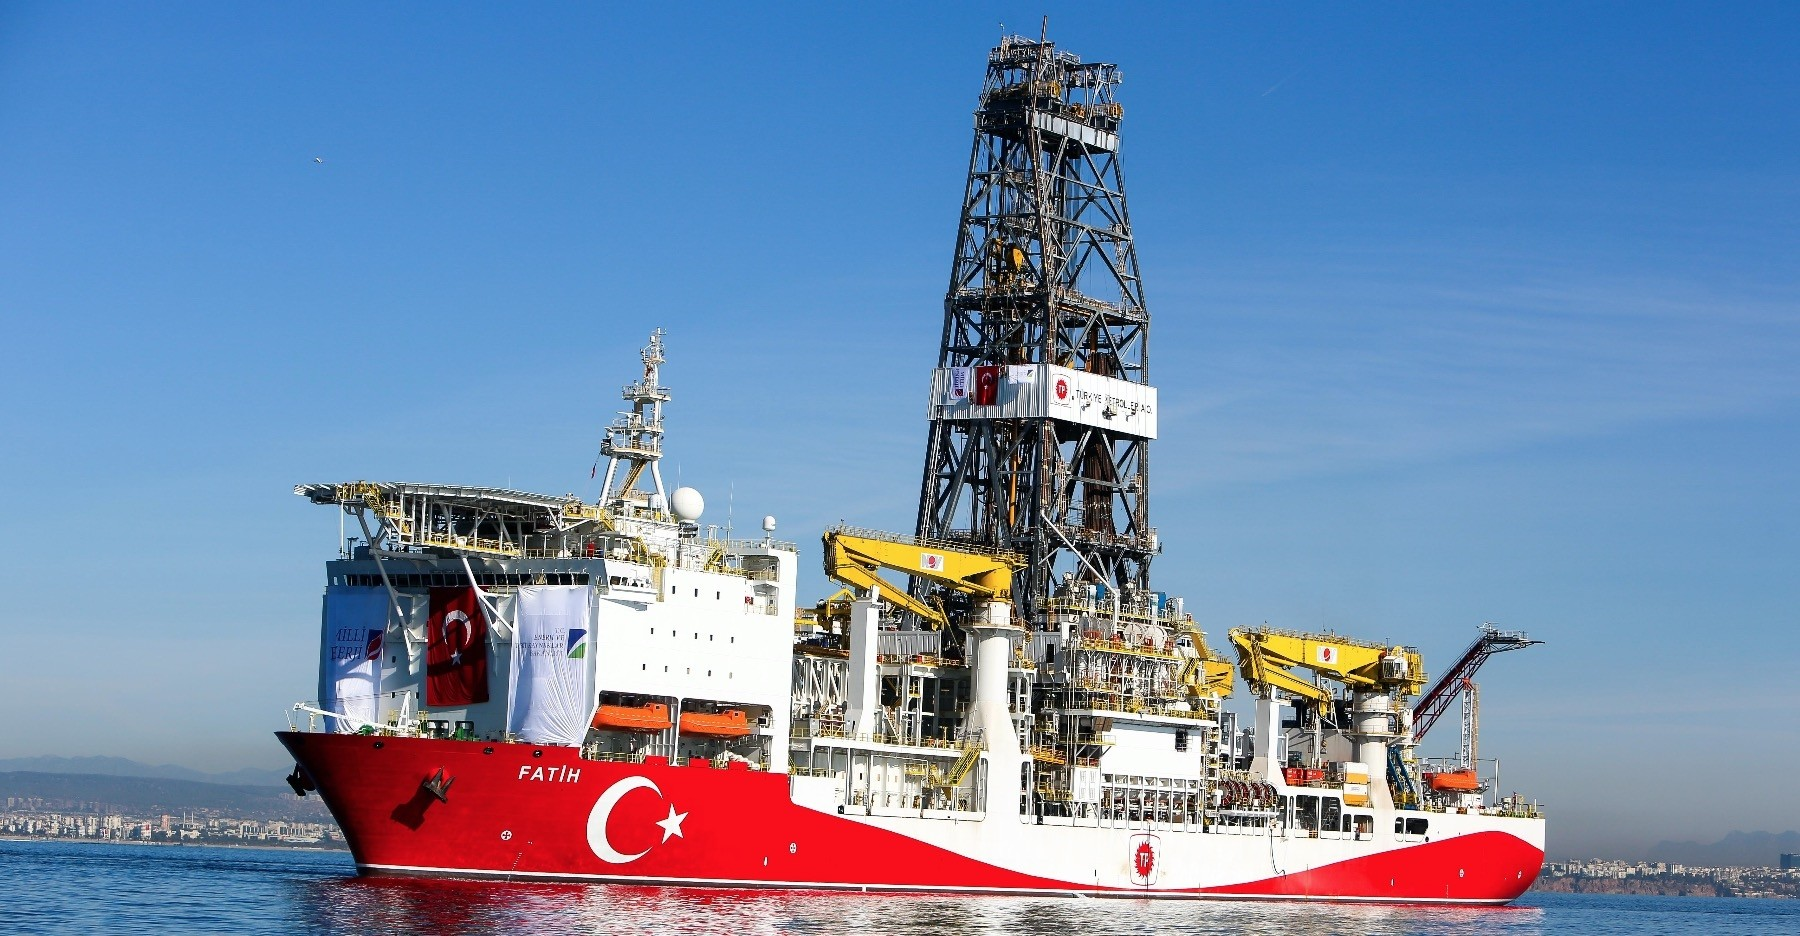 Turkeyu2019s first drilling vessel Fatih arrived near the city of Antalya in June 2018 to start the countryu2019s first drilling project in the Mediterranean.